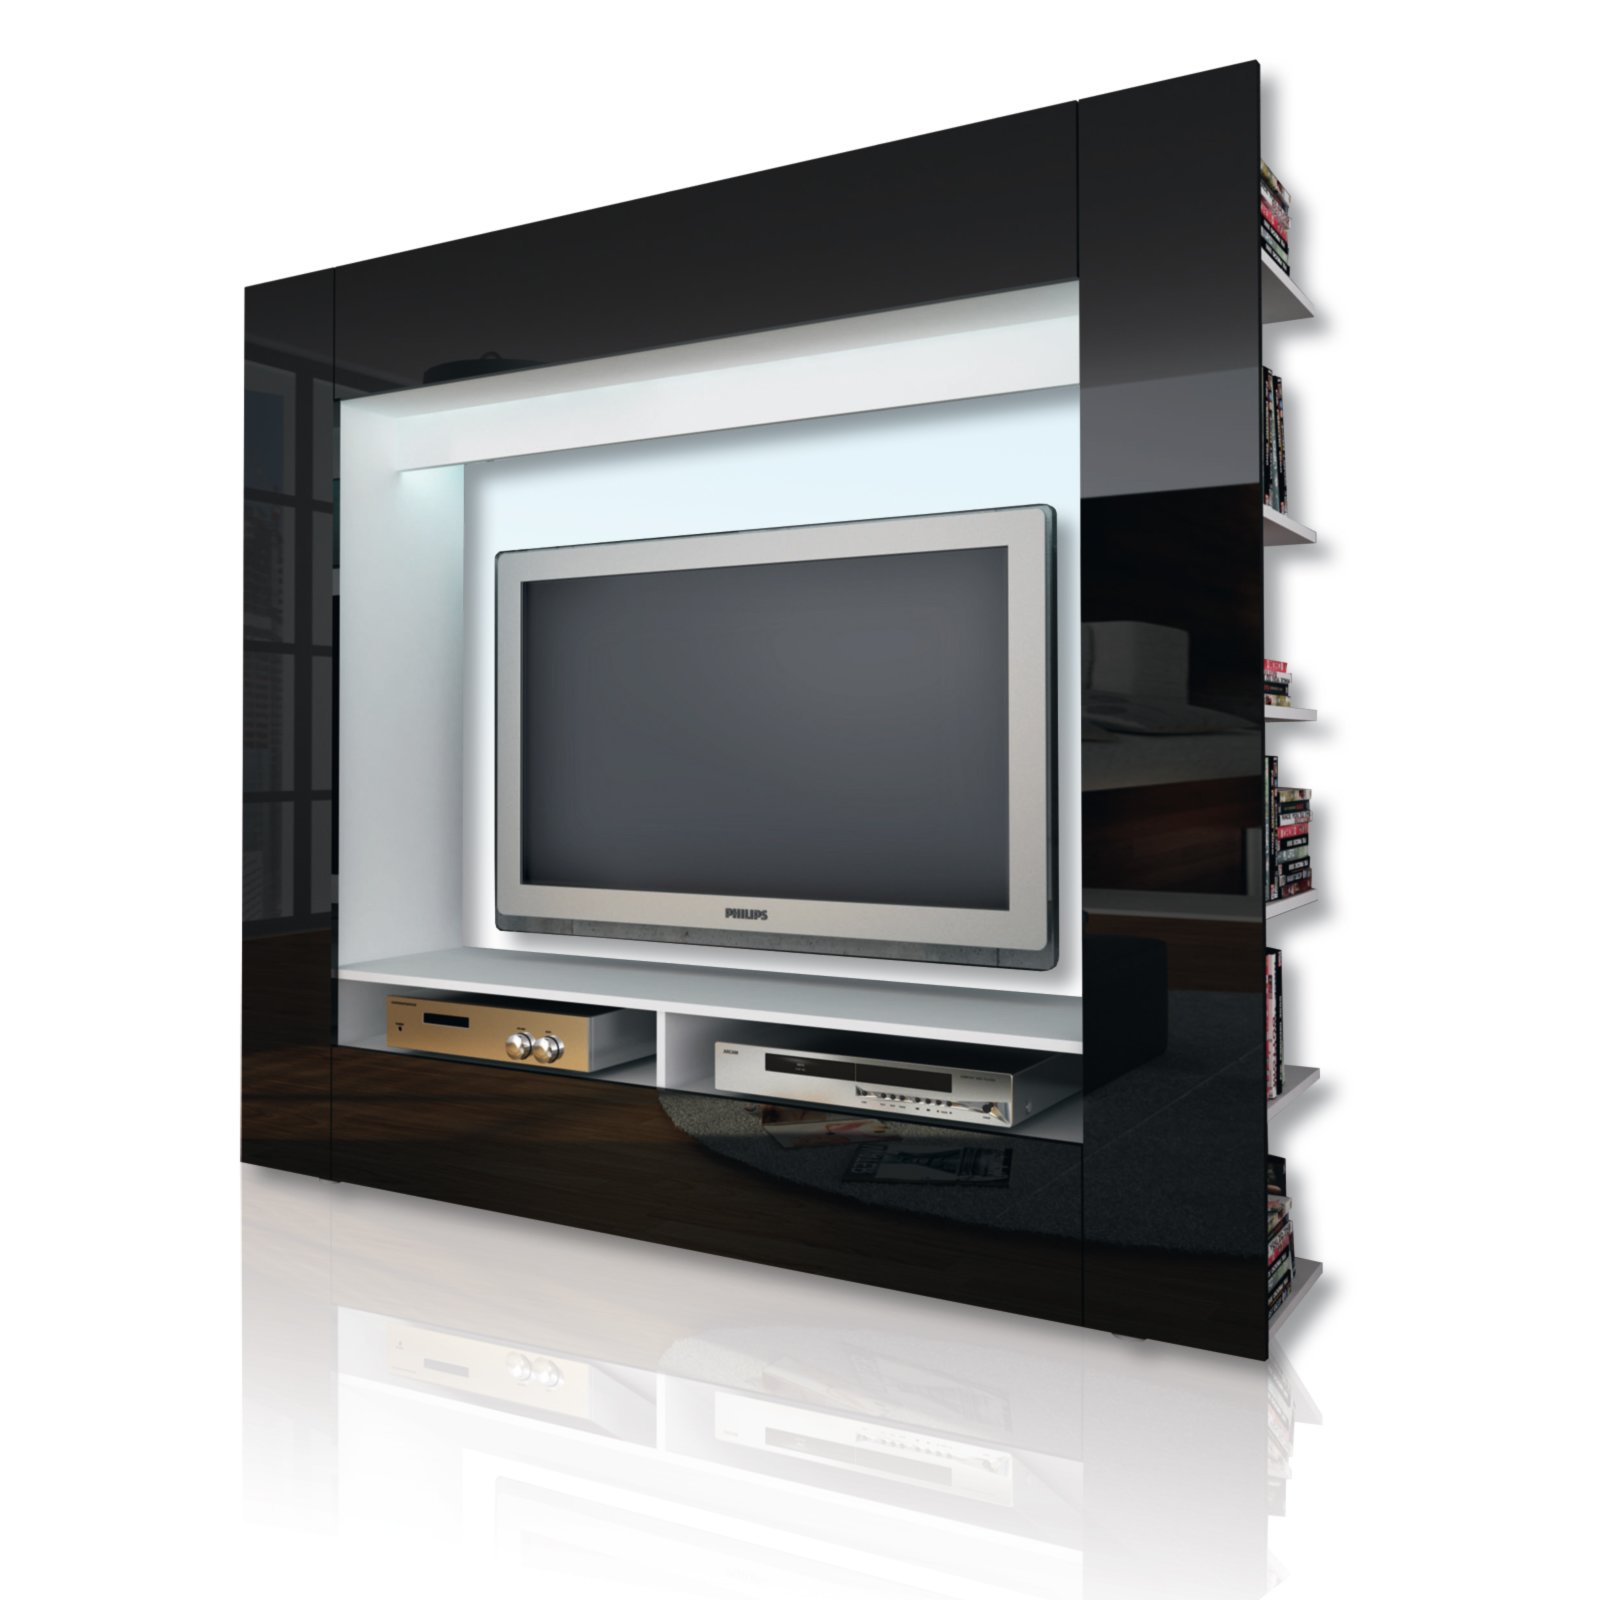 tv wand olli schwarz hochglanz tv w nde wohnw nde m bel m belhaus roller. Black Bedroom Furniture Sets. Home Design Ideas